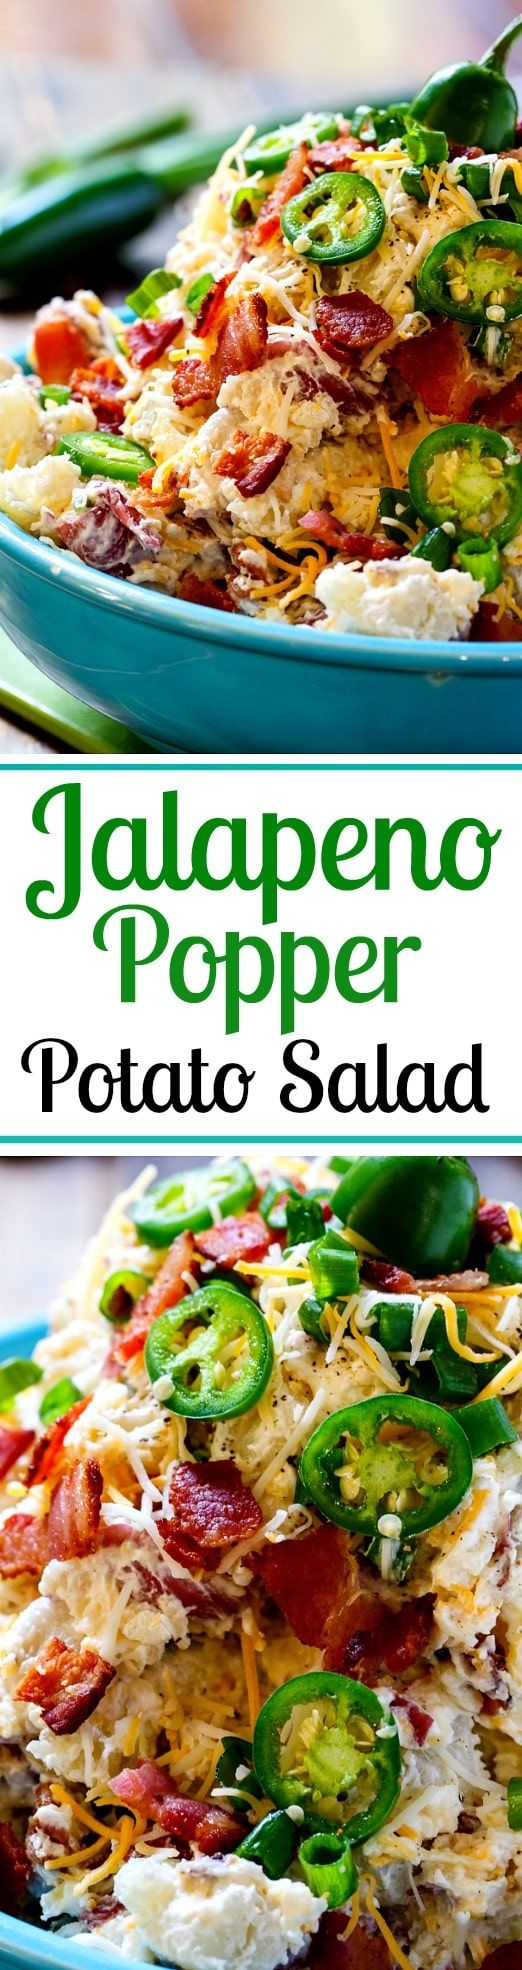 Jalapeno Popper Potato Salad flavored with cream cheese, bacon, and lots of jalapenos.